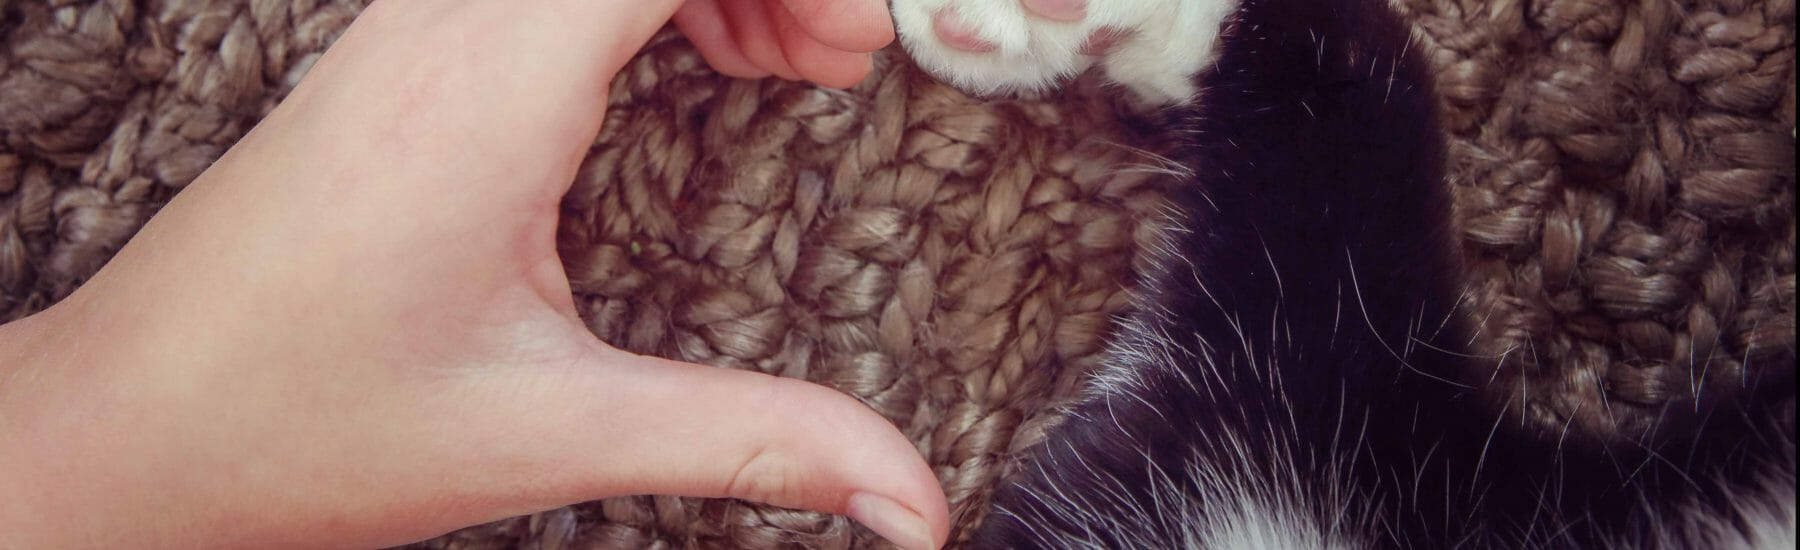 Hand of a person and cat paw forming the shape of a heart